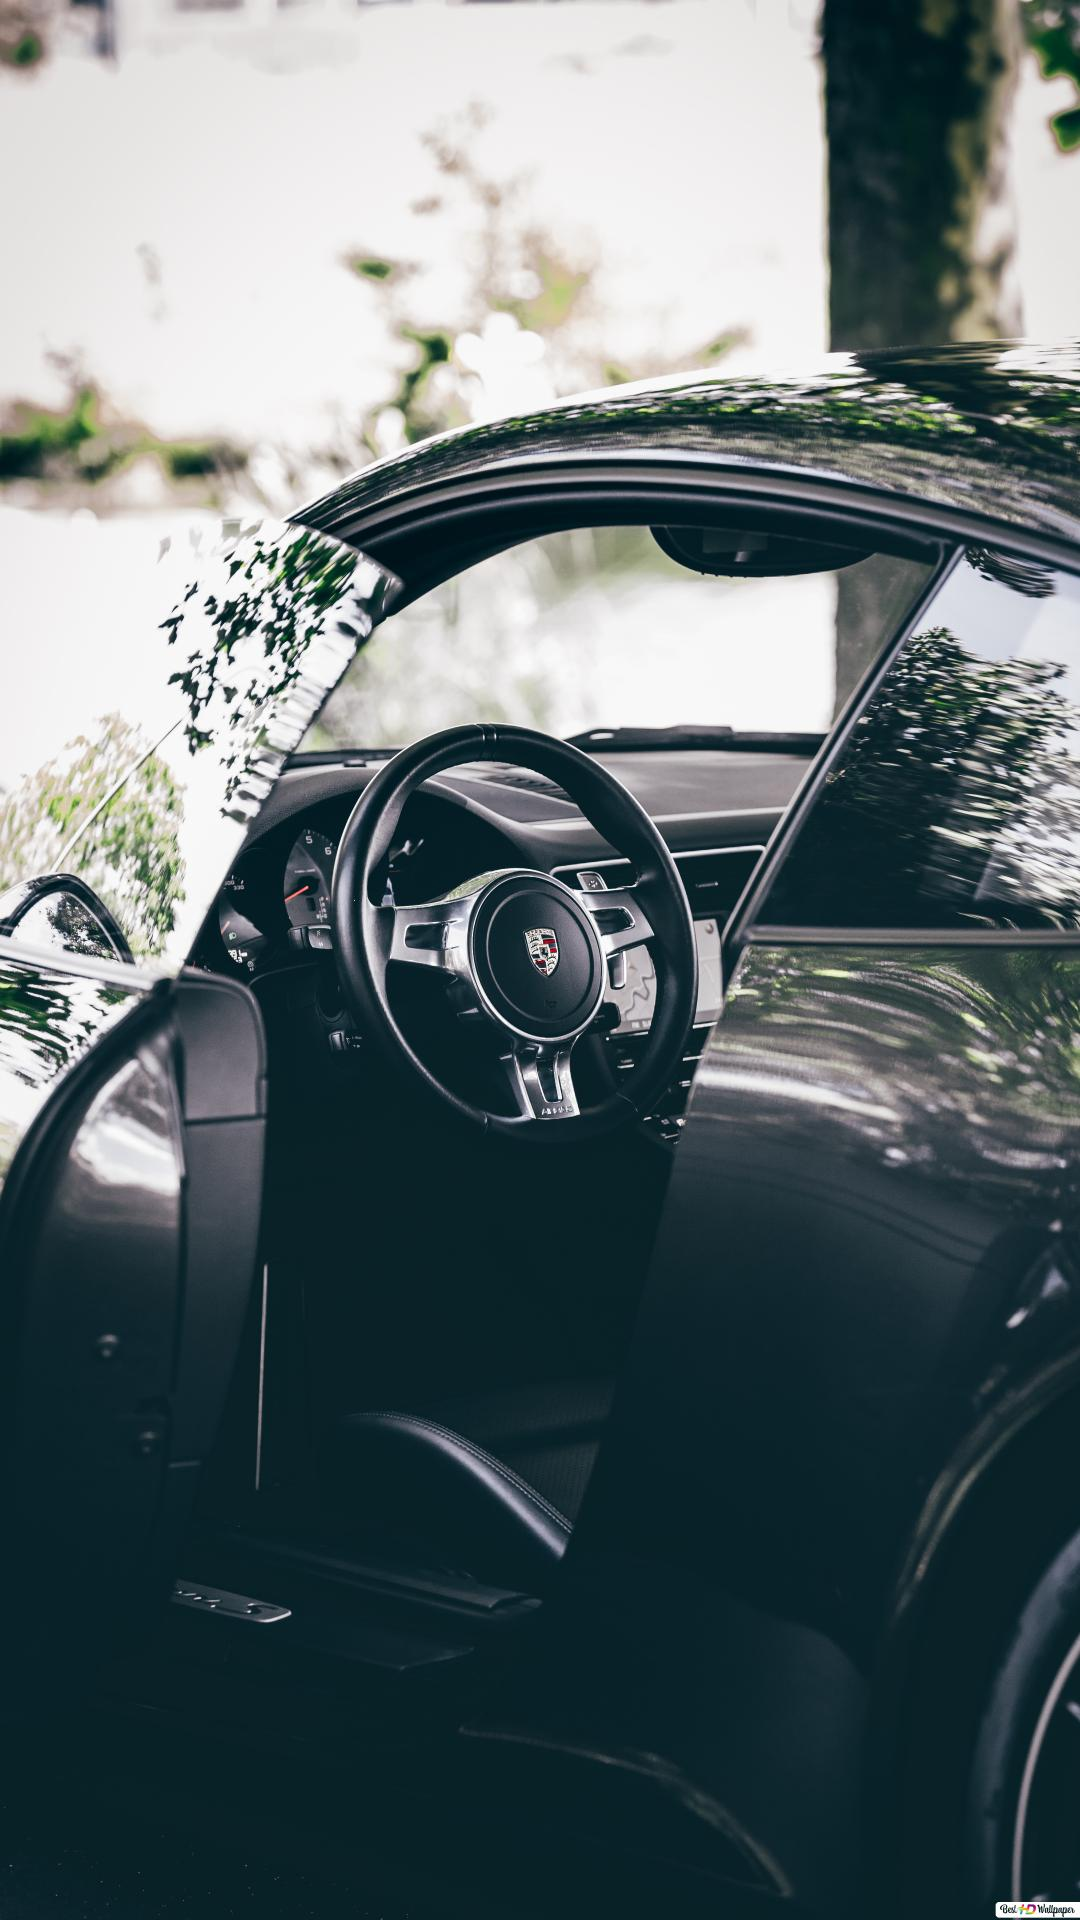 Black Porsche 911 sports car opened during daytime HD